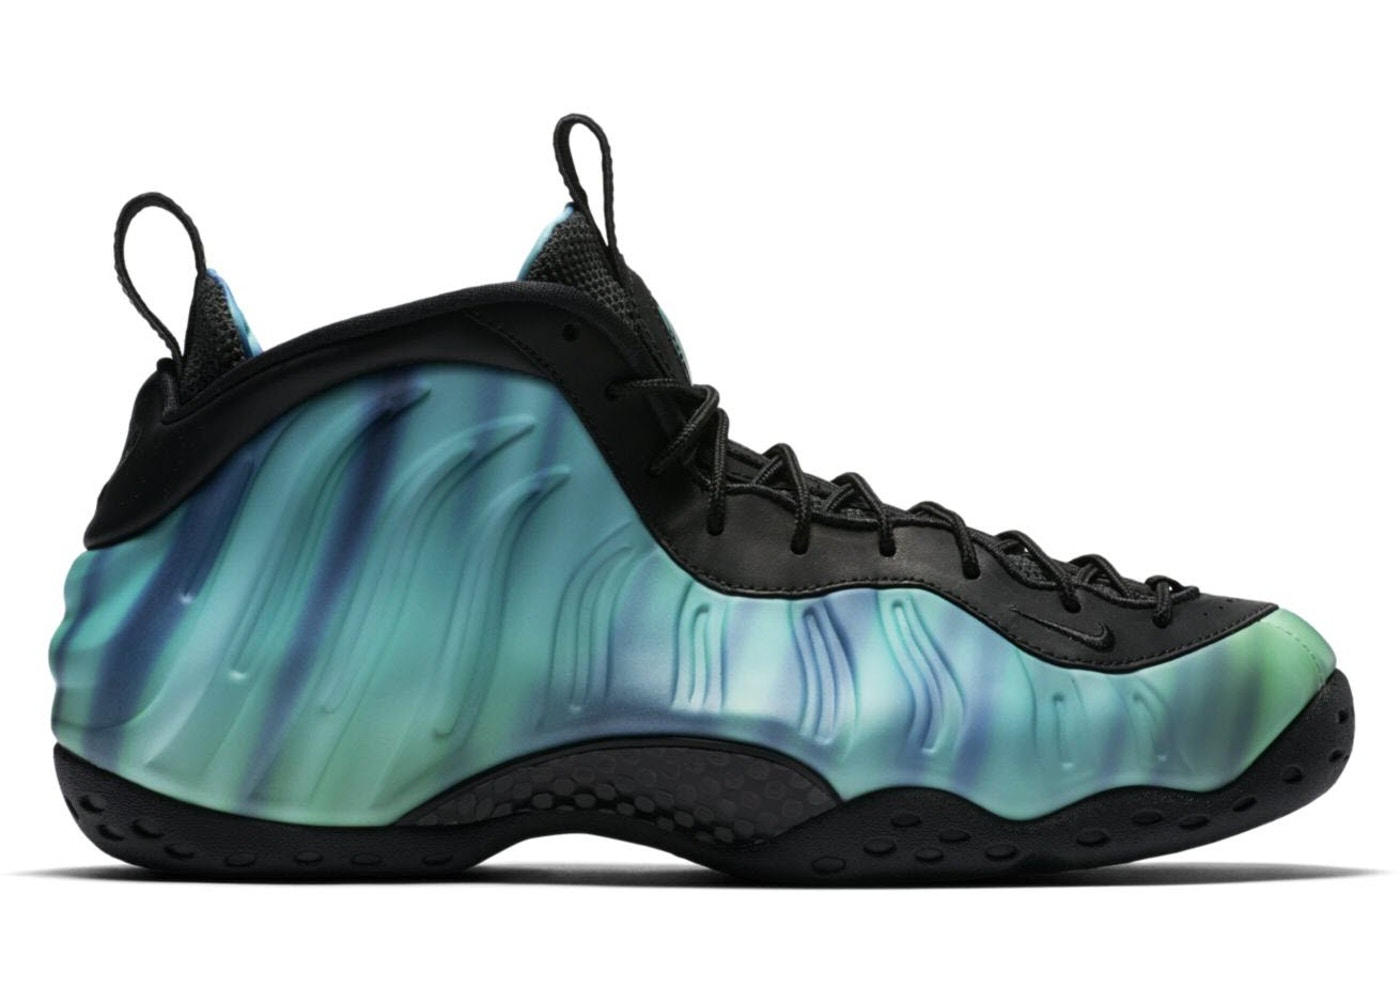 best loved 7e78f f5a92 Air Foamposite One Northern Lights (GS) - 842399-001